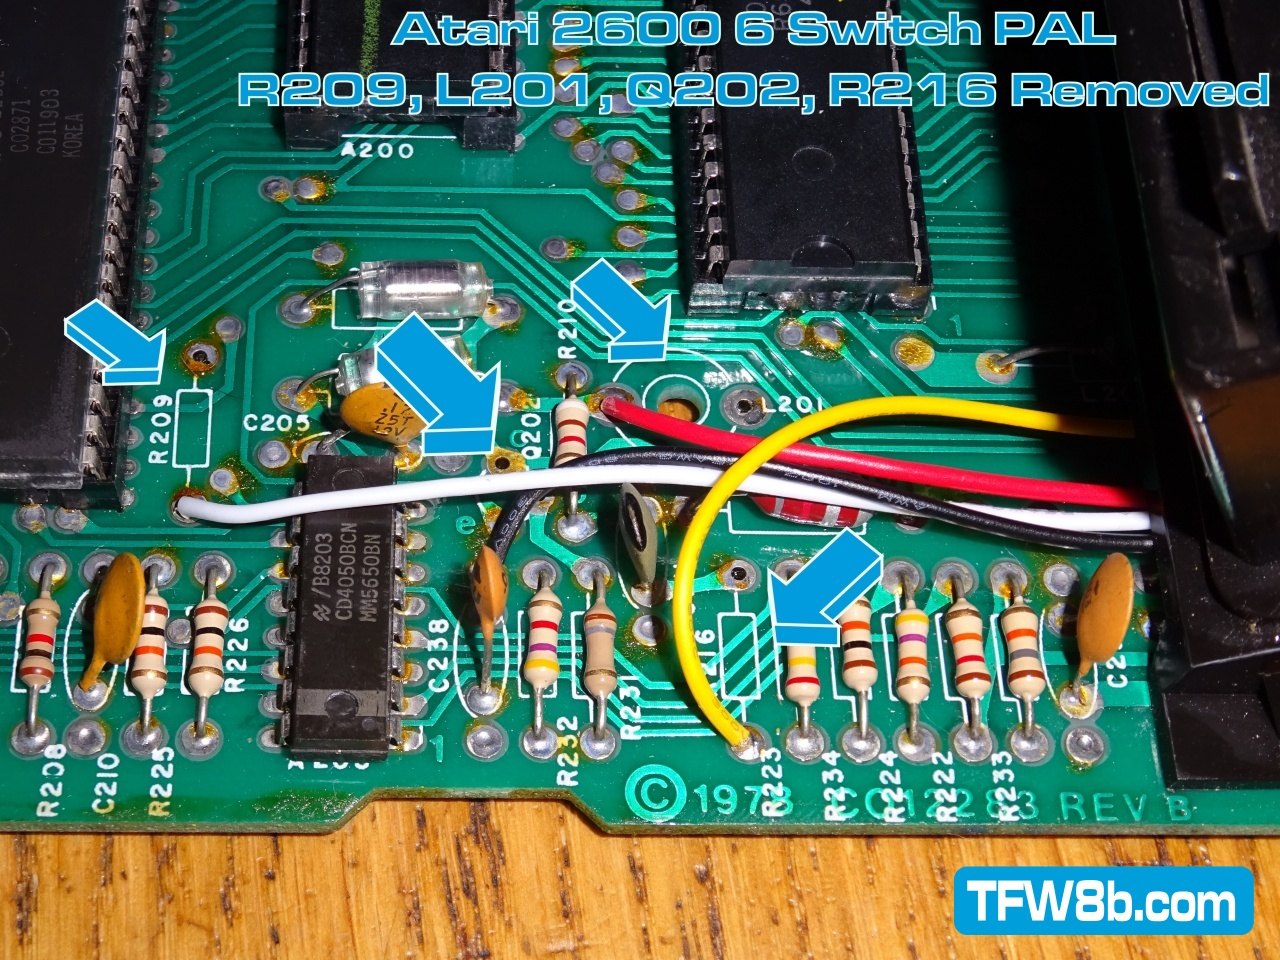 Atari 2600 6 Switch PAL Composite Video Mod